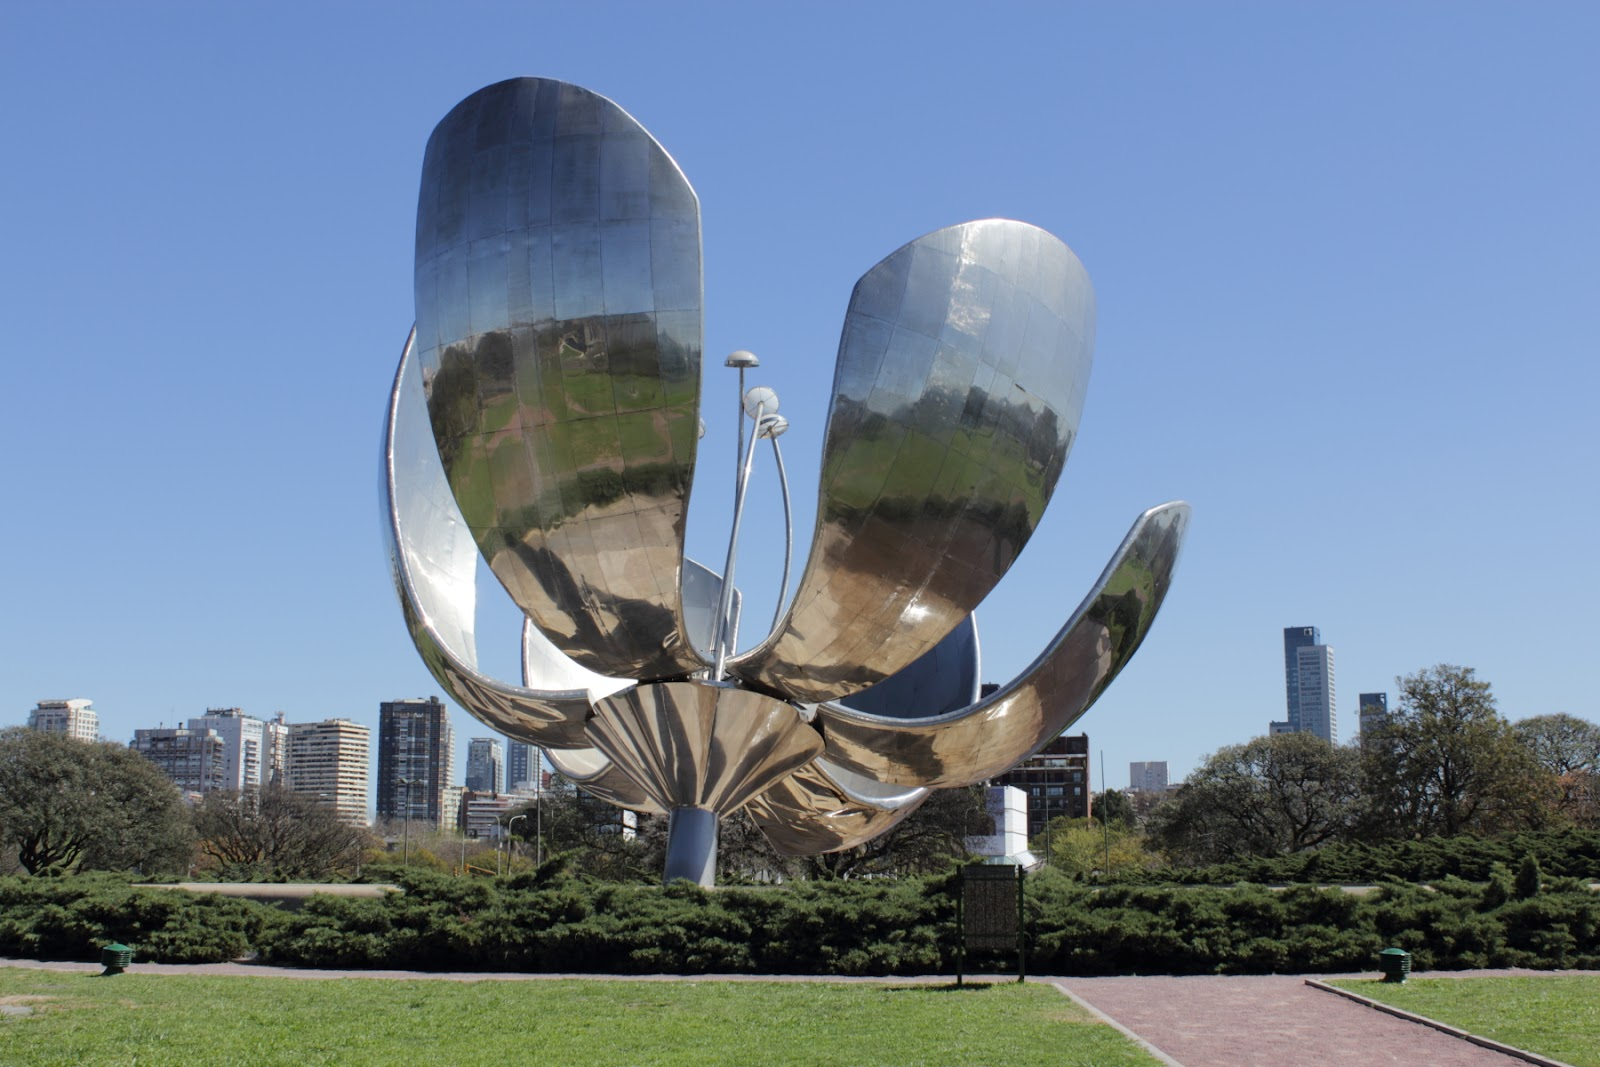 Floralis Genérica - The sculpture is capable of closing its petals in the evening and opening them in the morning, although this mechanism is currently disabled.